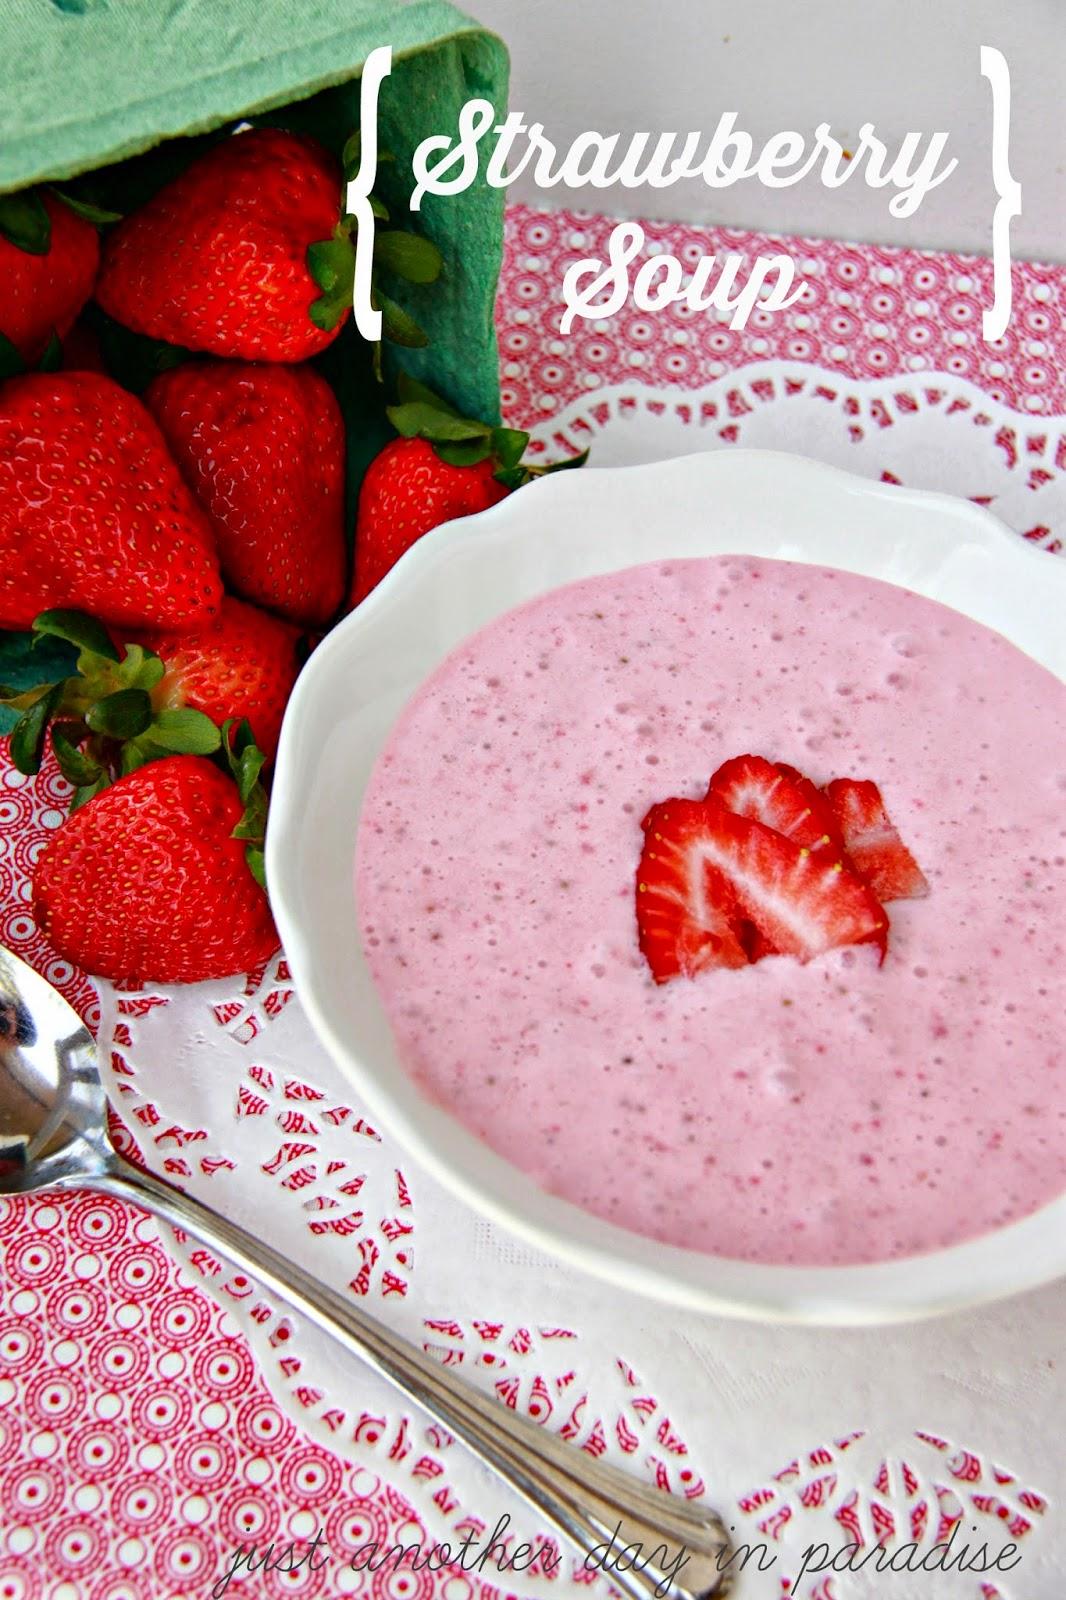 Larissa Another Day: Strawberry Soup